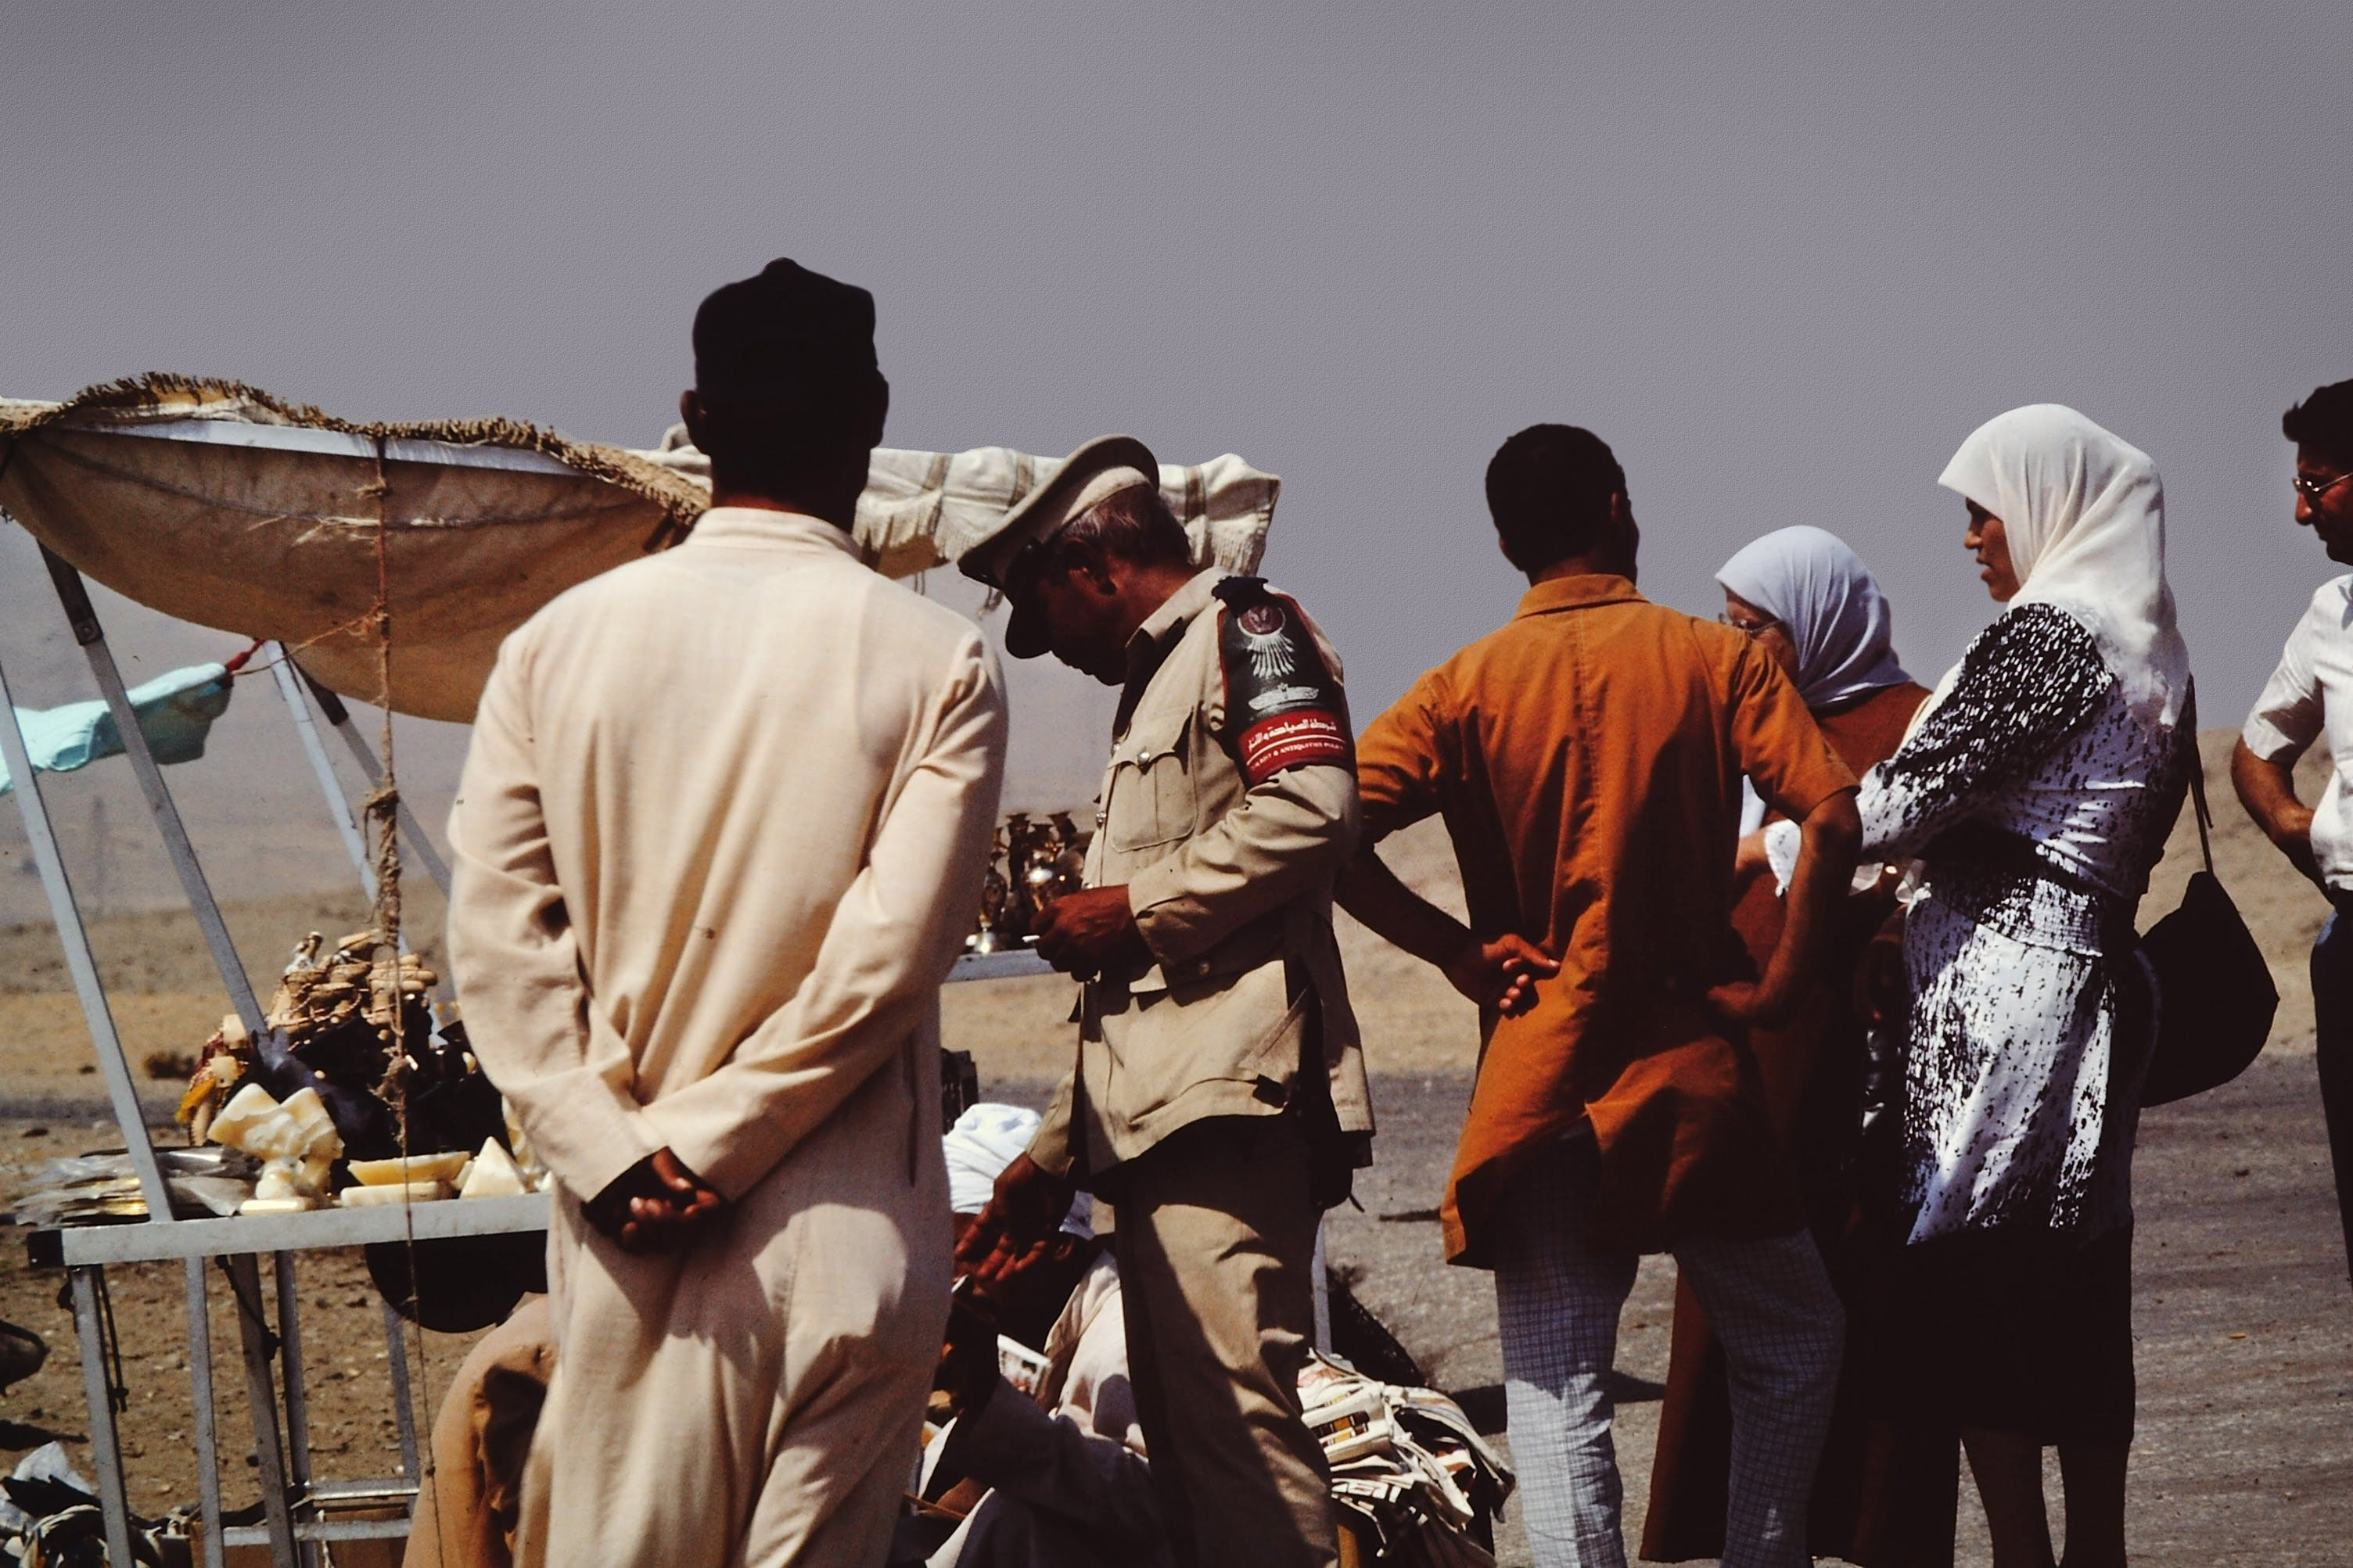 Group of People on Desert Beside Brown Tent